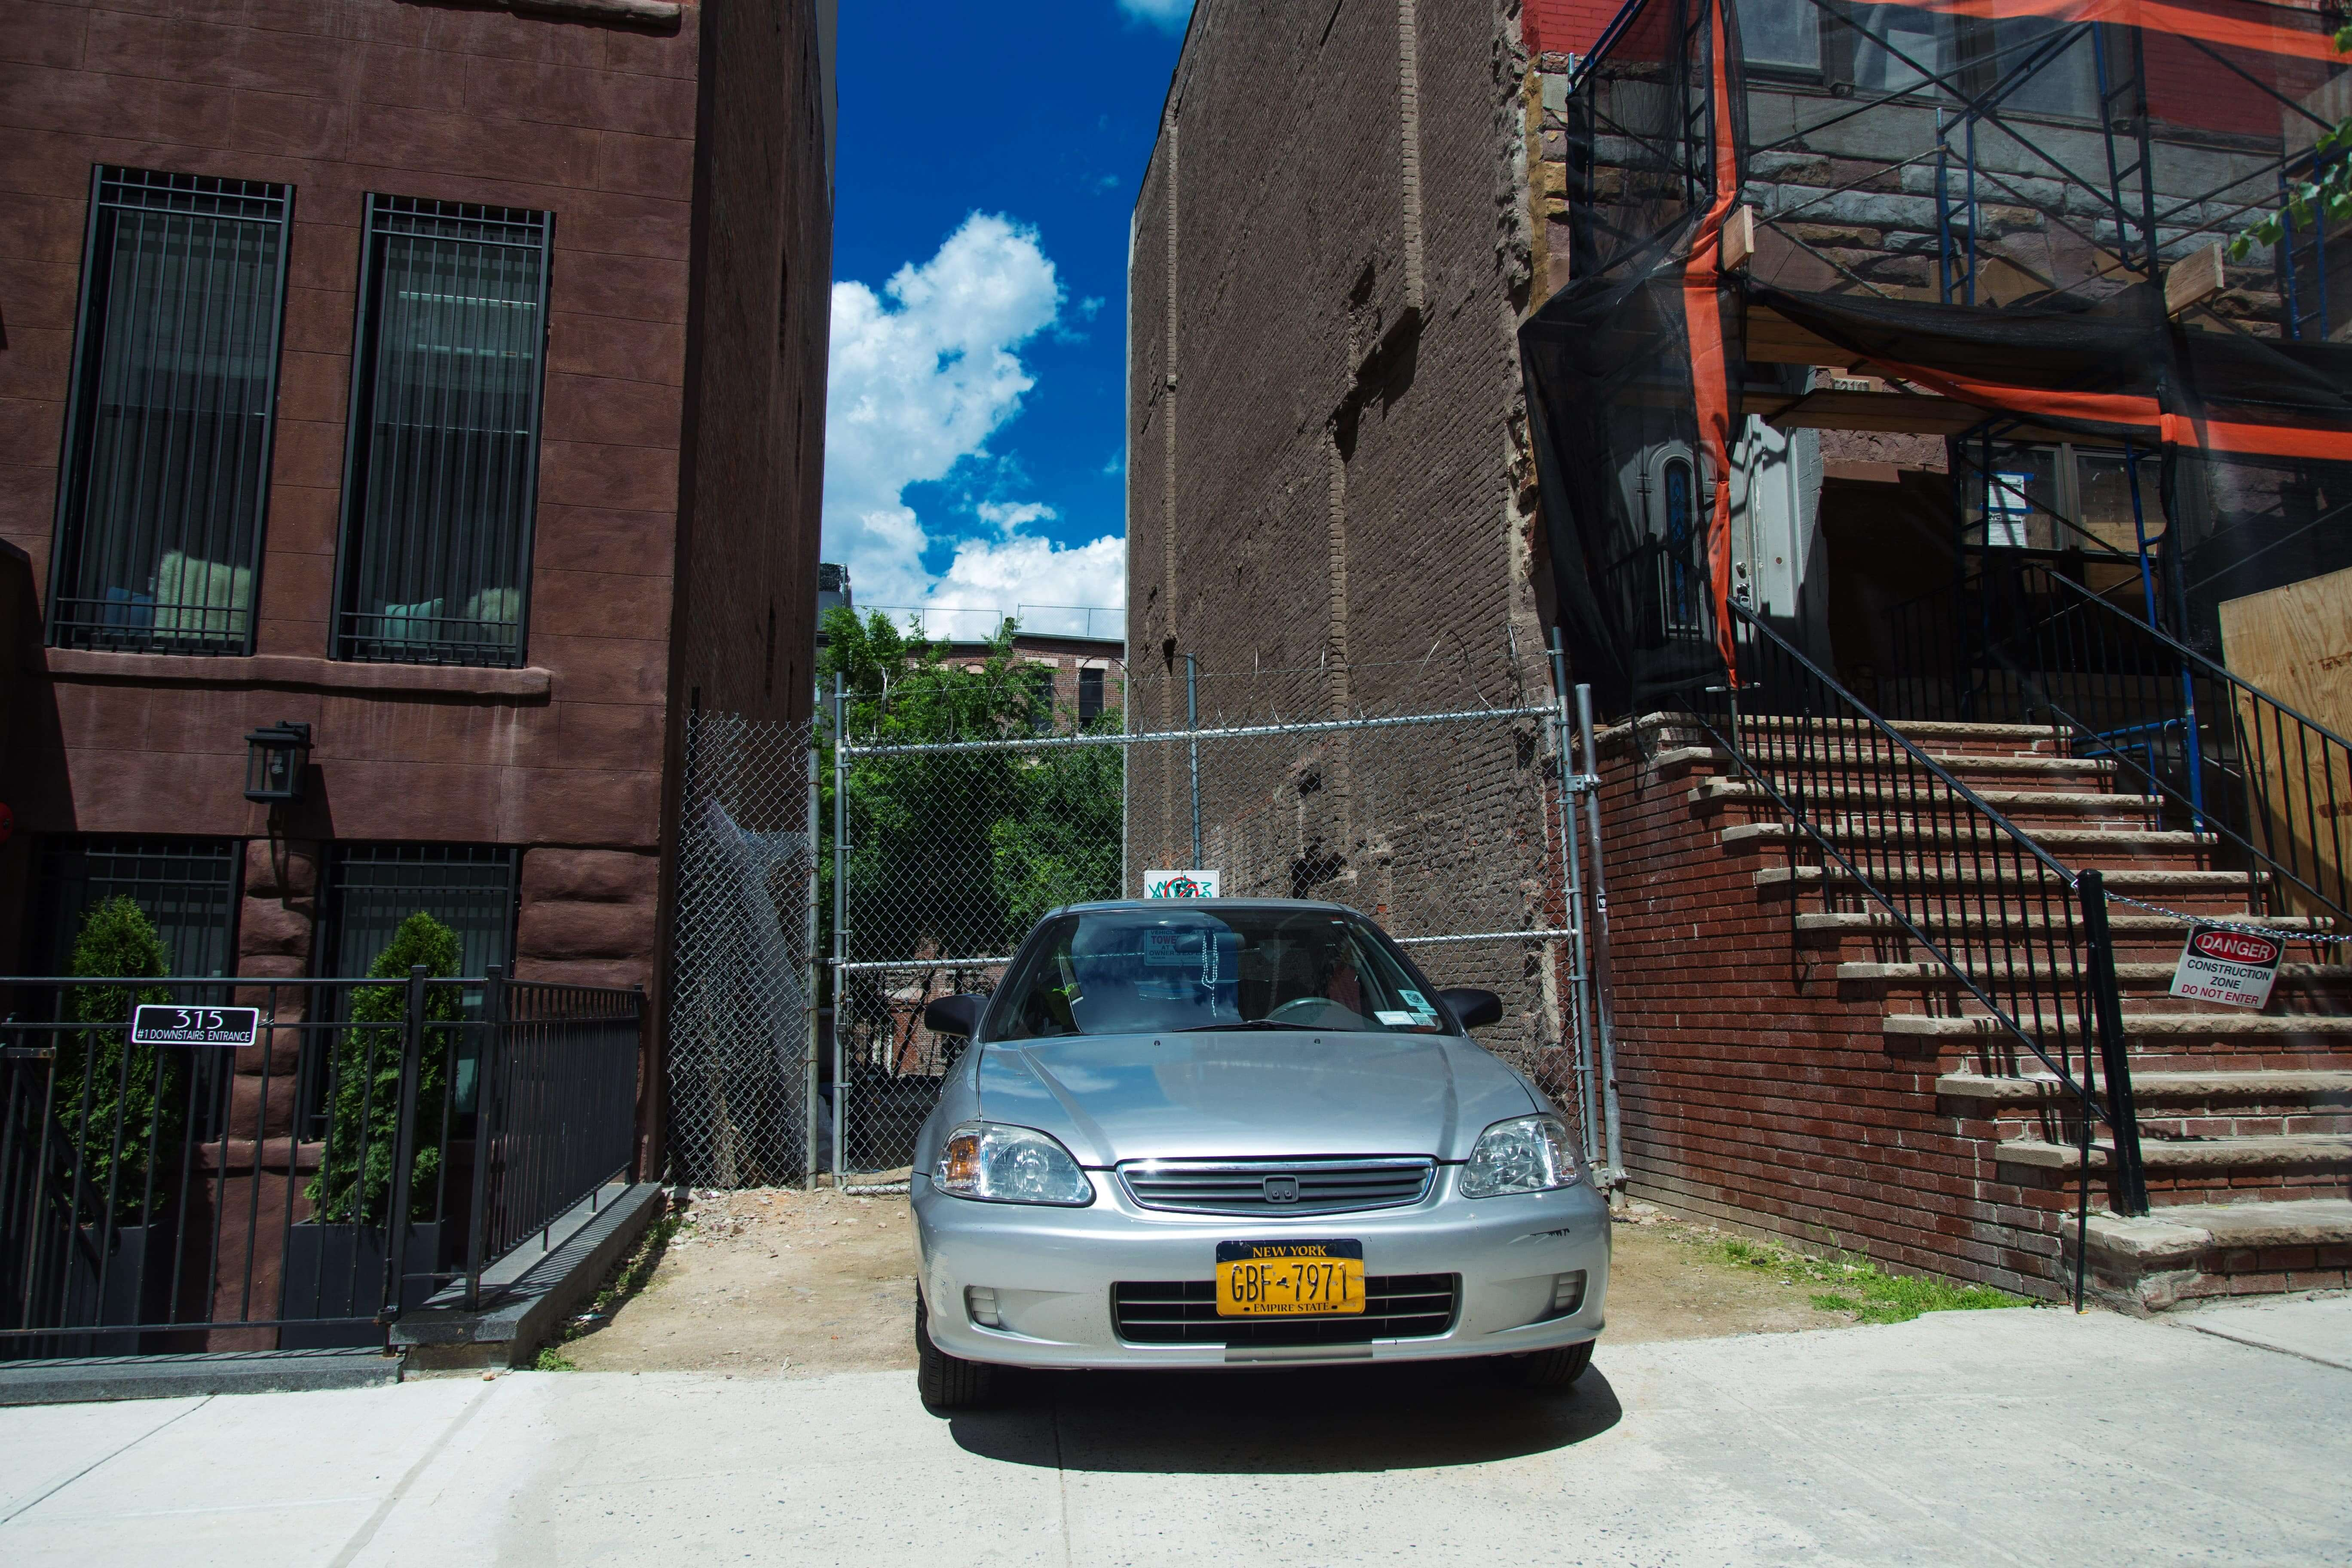 313-West-121st-Street.png